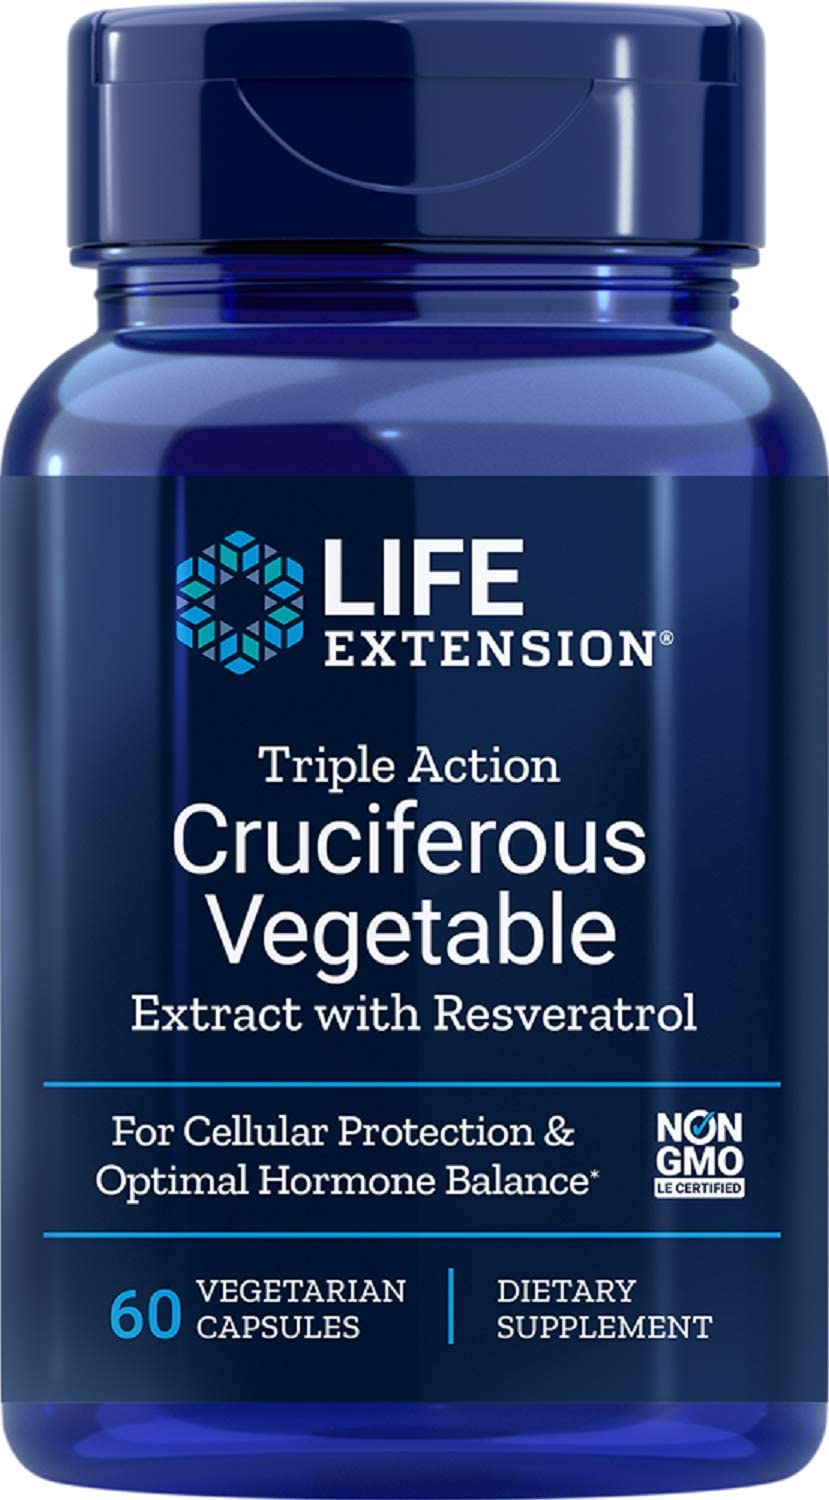 Life Extension Triple Action Cruciferous Vegetable Extract with Resveratrol, 60 Vegetarian Capsules